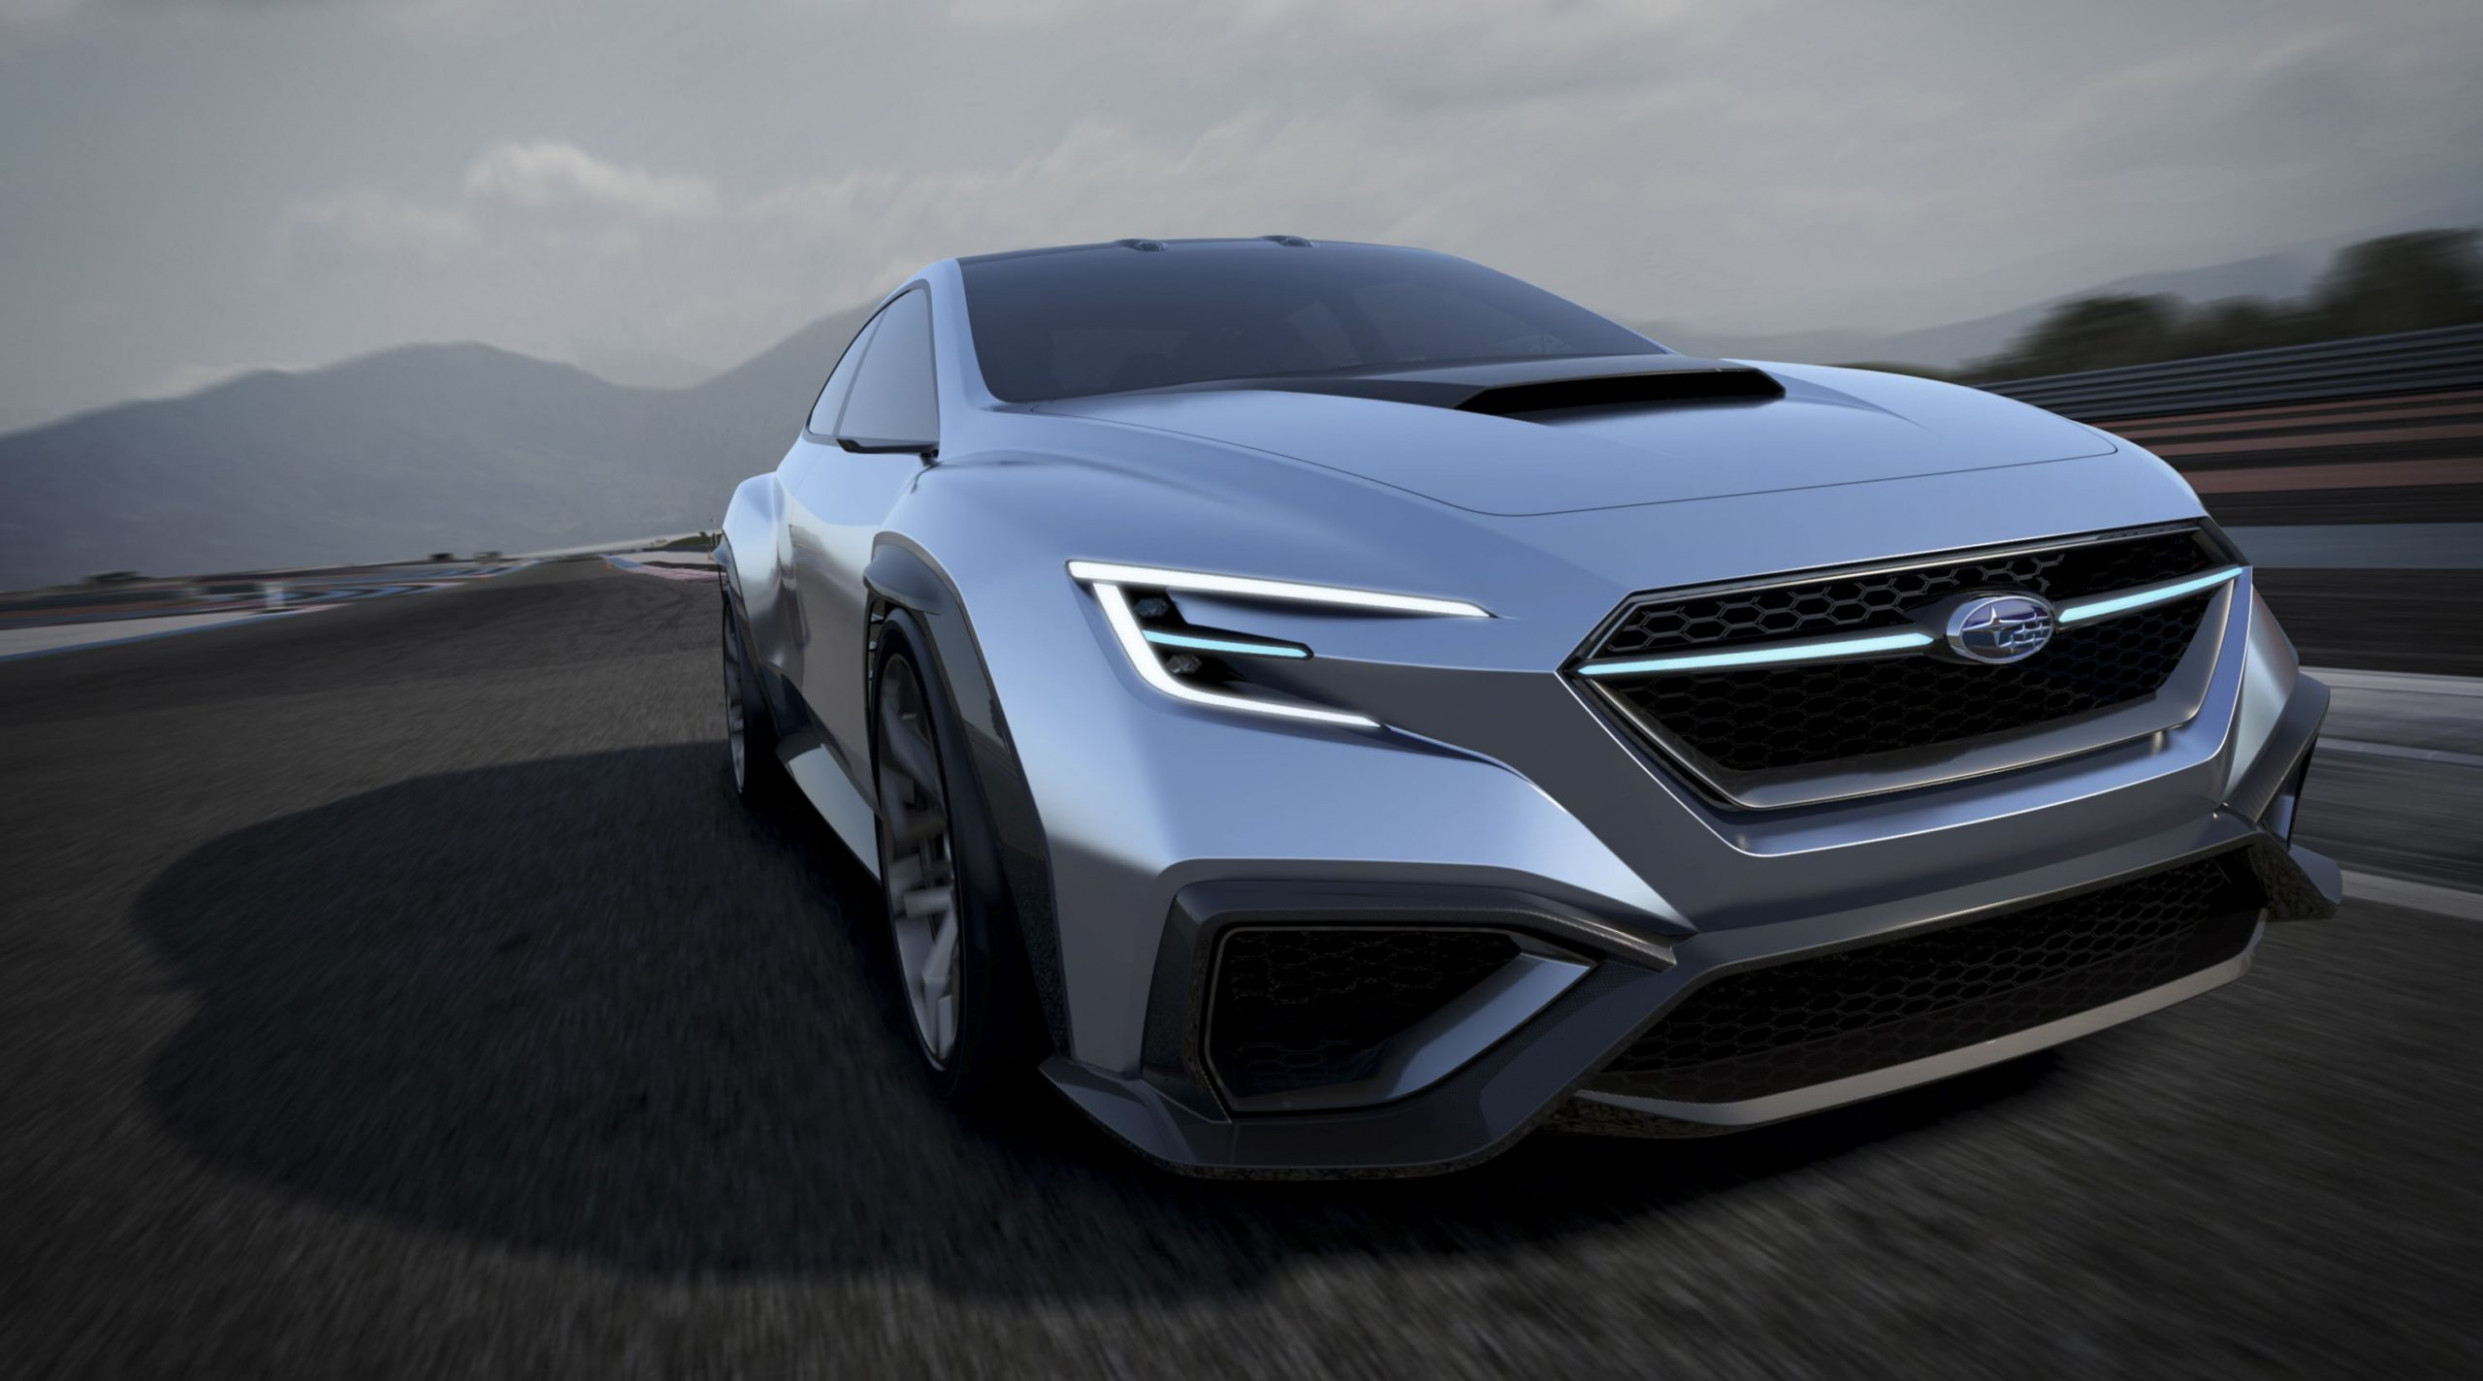 Redesign and Concept Subaru Models 2022